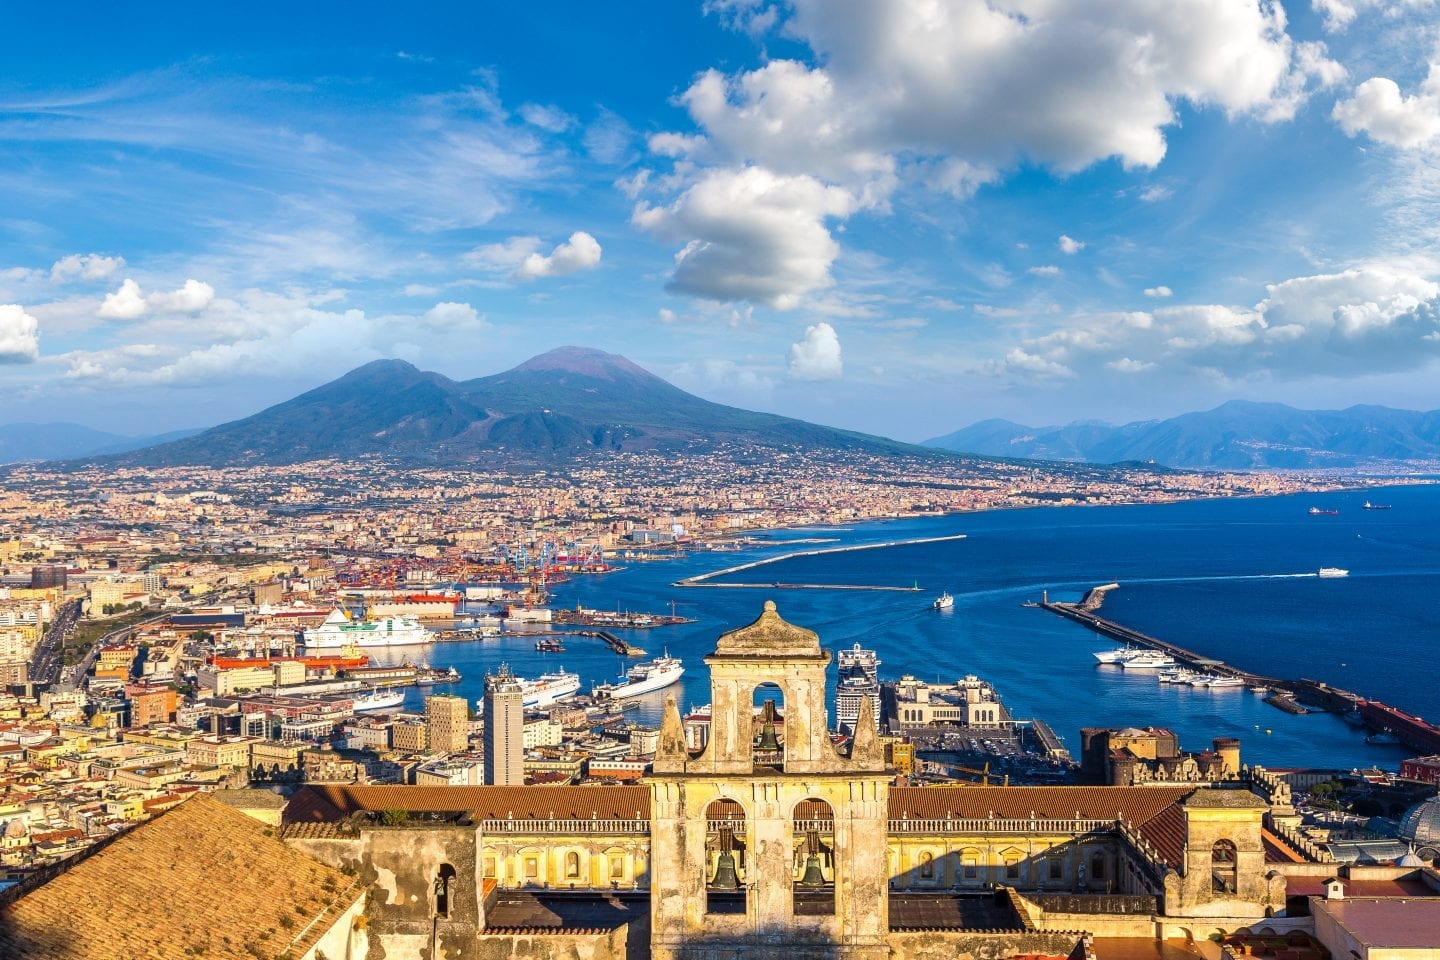 One Day In Naples: Exploring This Coastal Italian City